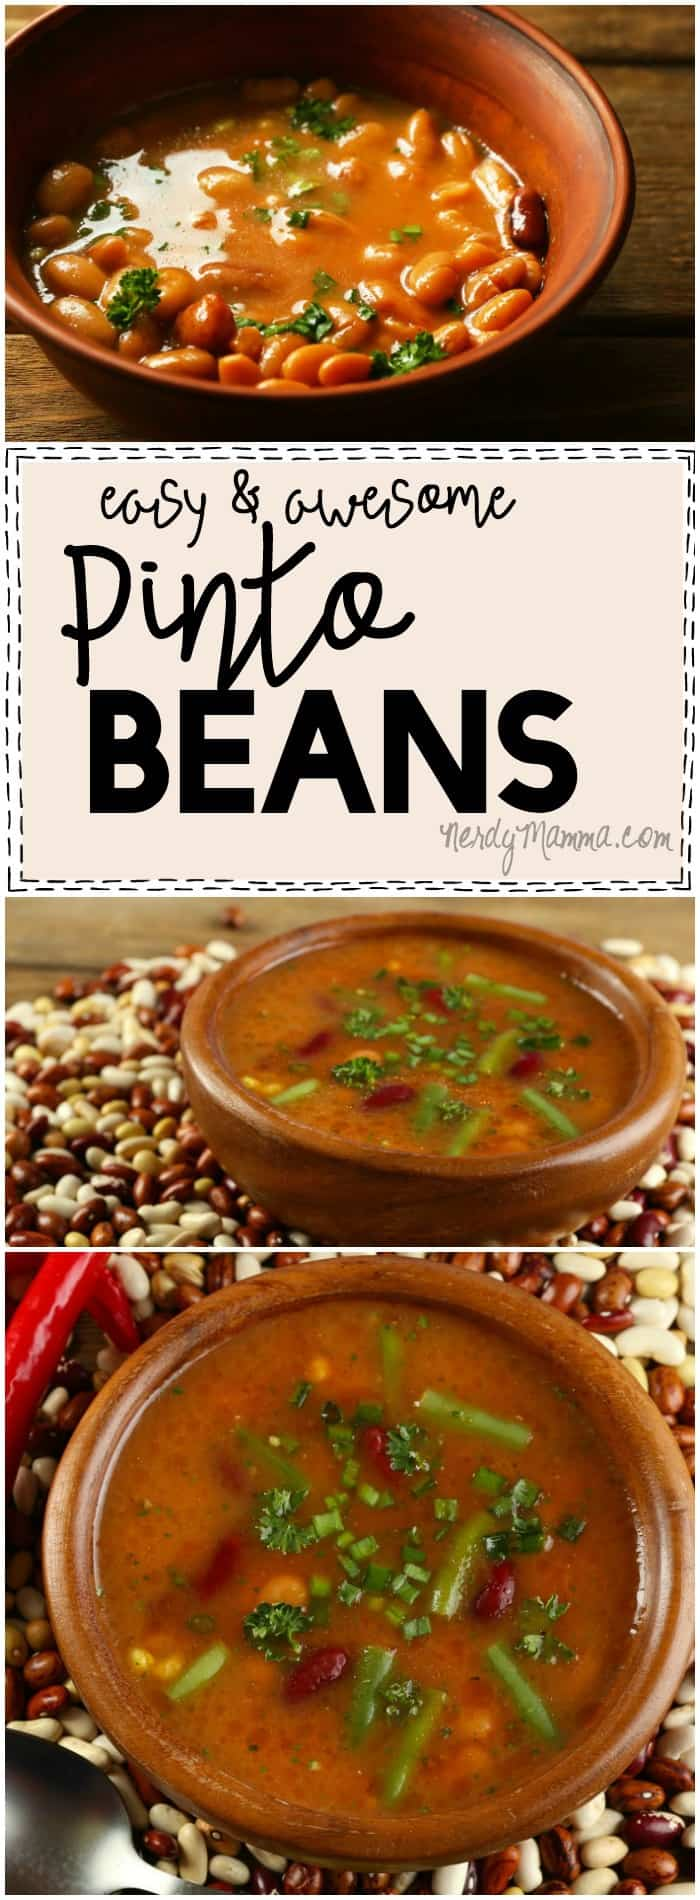 These Easy and Awesome Pinto Beans...They are SO AWESOME. I mean--I love beans...but this recipe...makes them non-gassy...and have bacon. Mmmm...